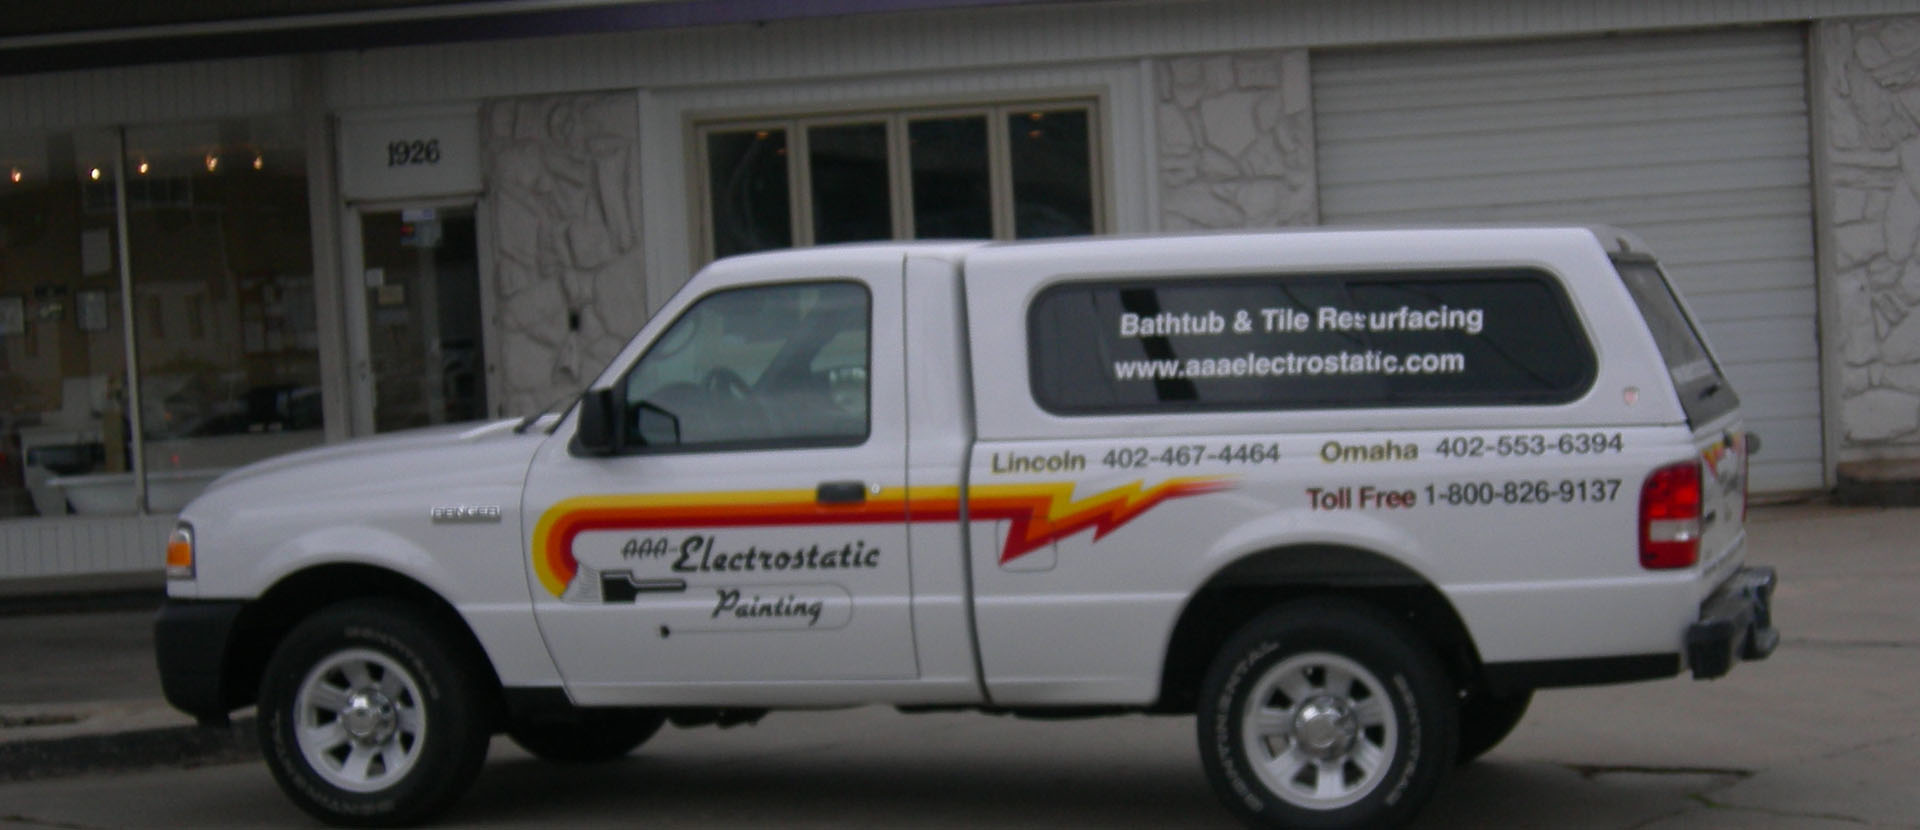 Home | Lincoln Electrostatic Painting And Bathtub Refinishing